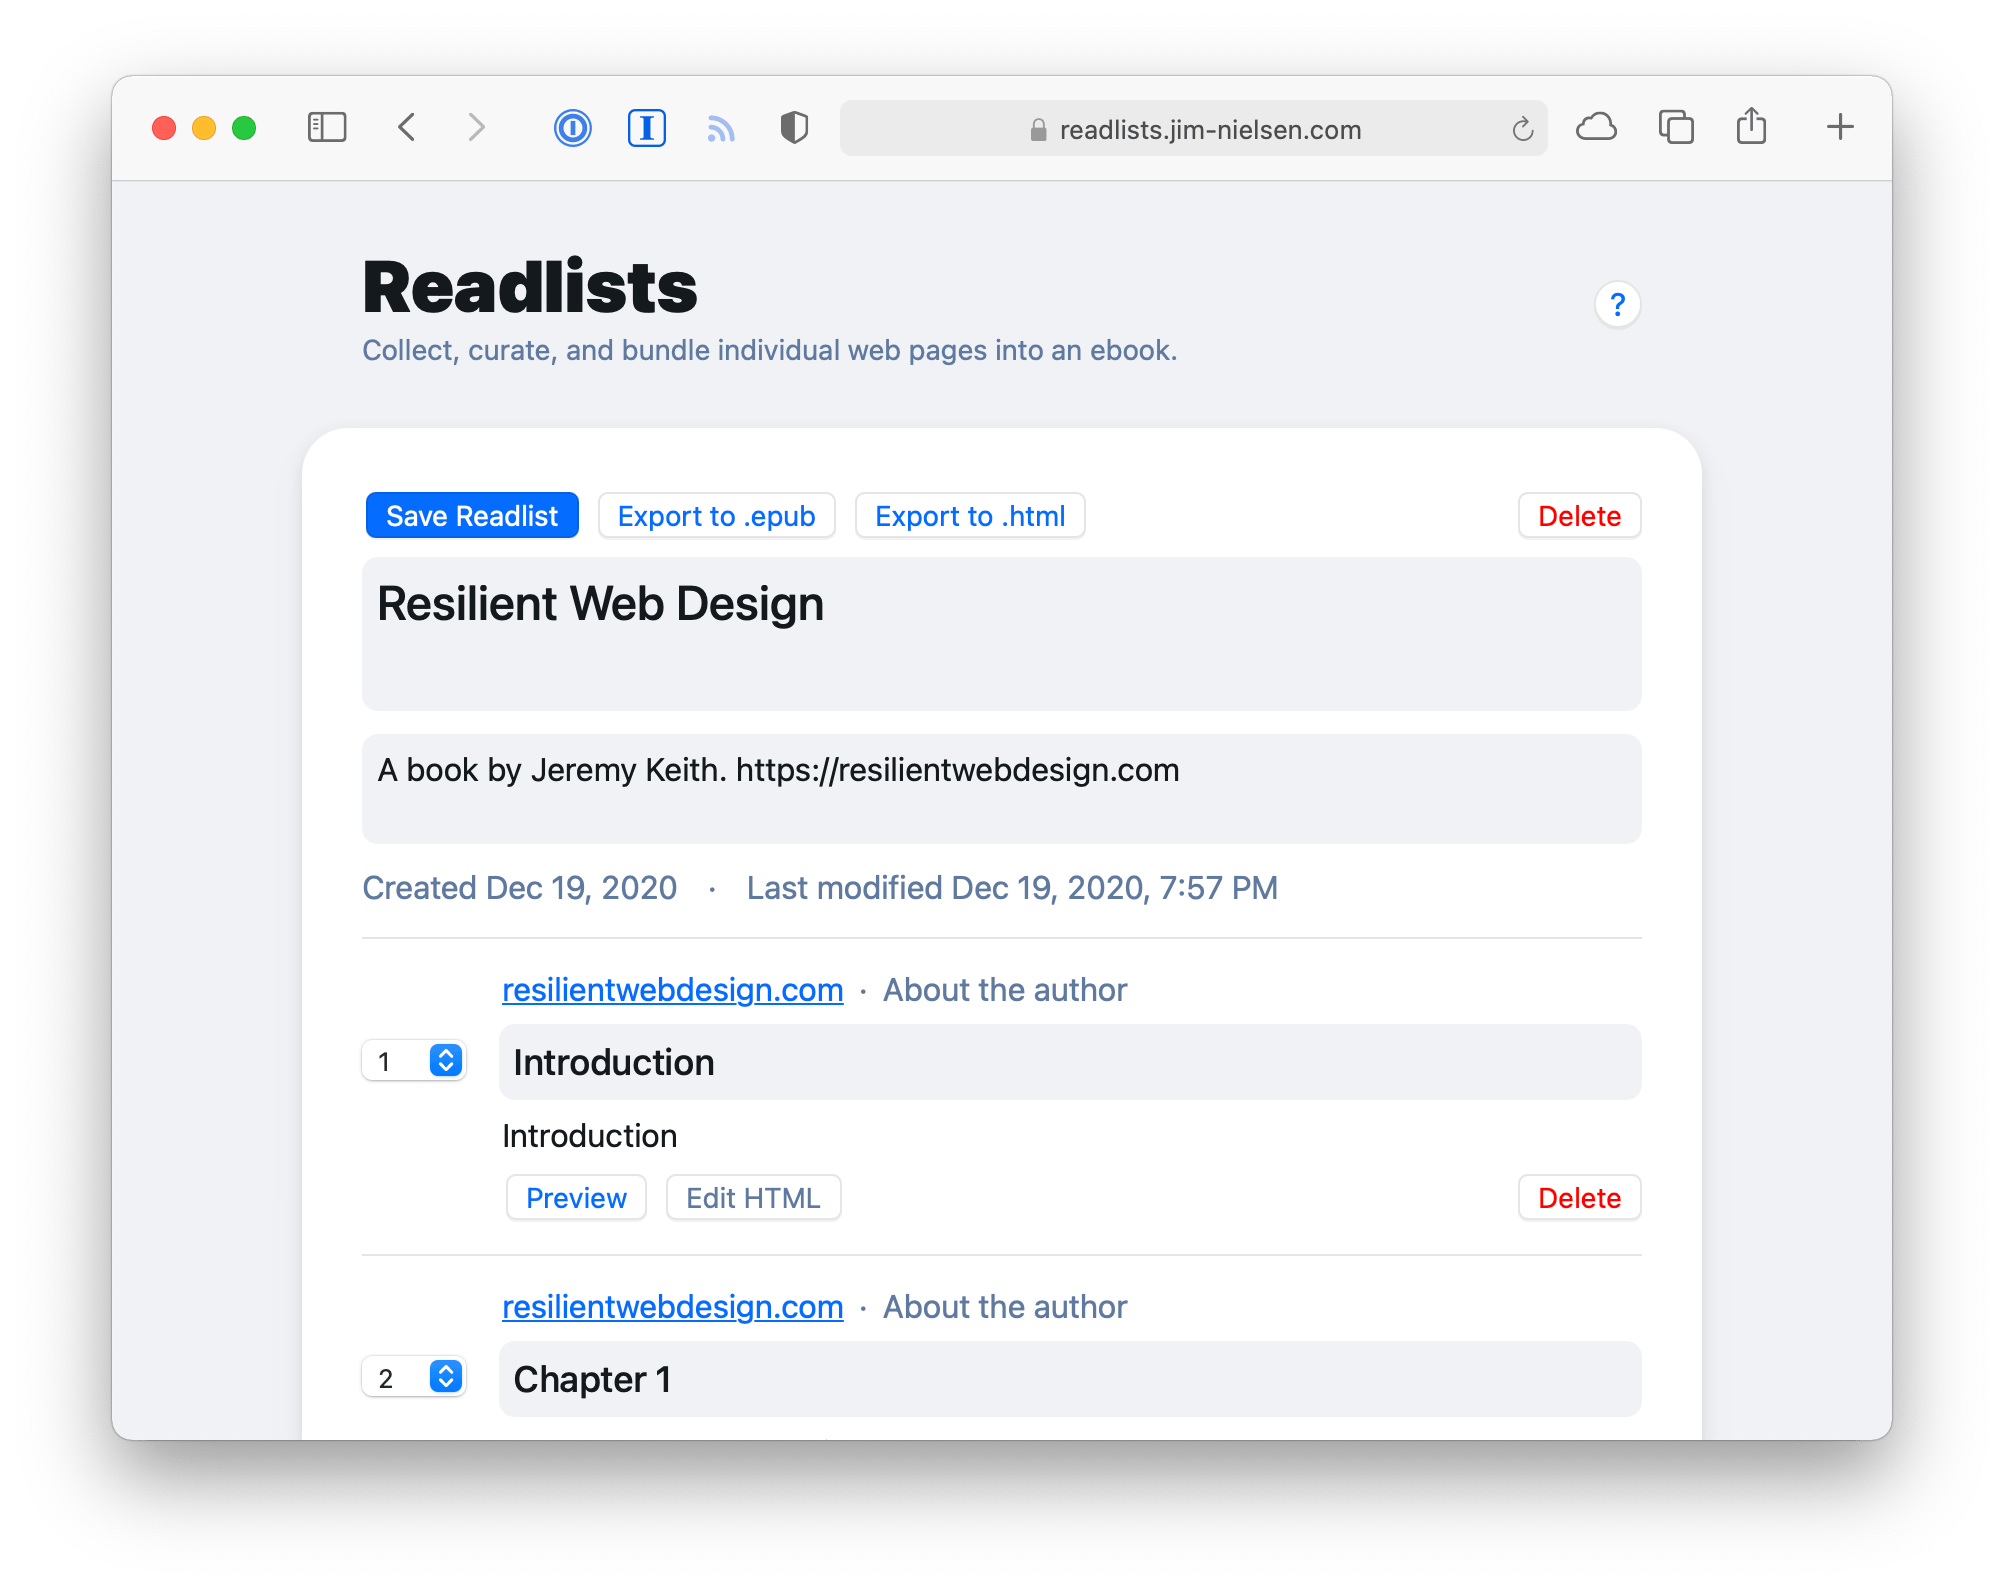 """Screenshot of readlists.jim-nielsen.com with the book """"Resilient Web Design� by Jeremy Keith"""